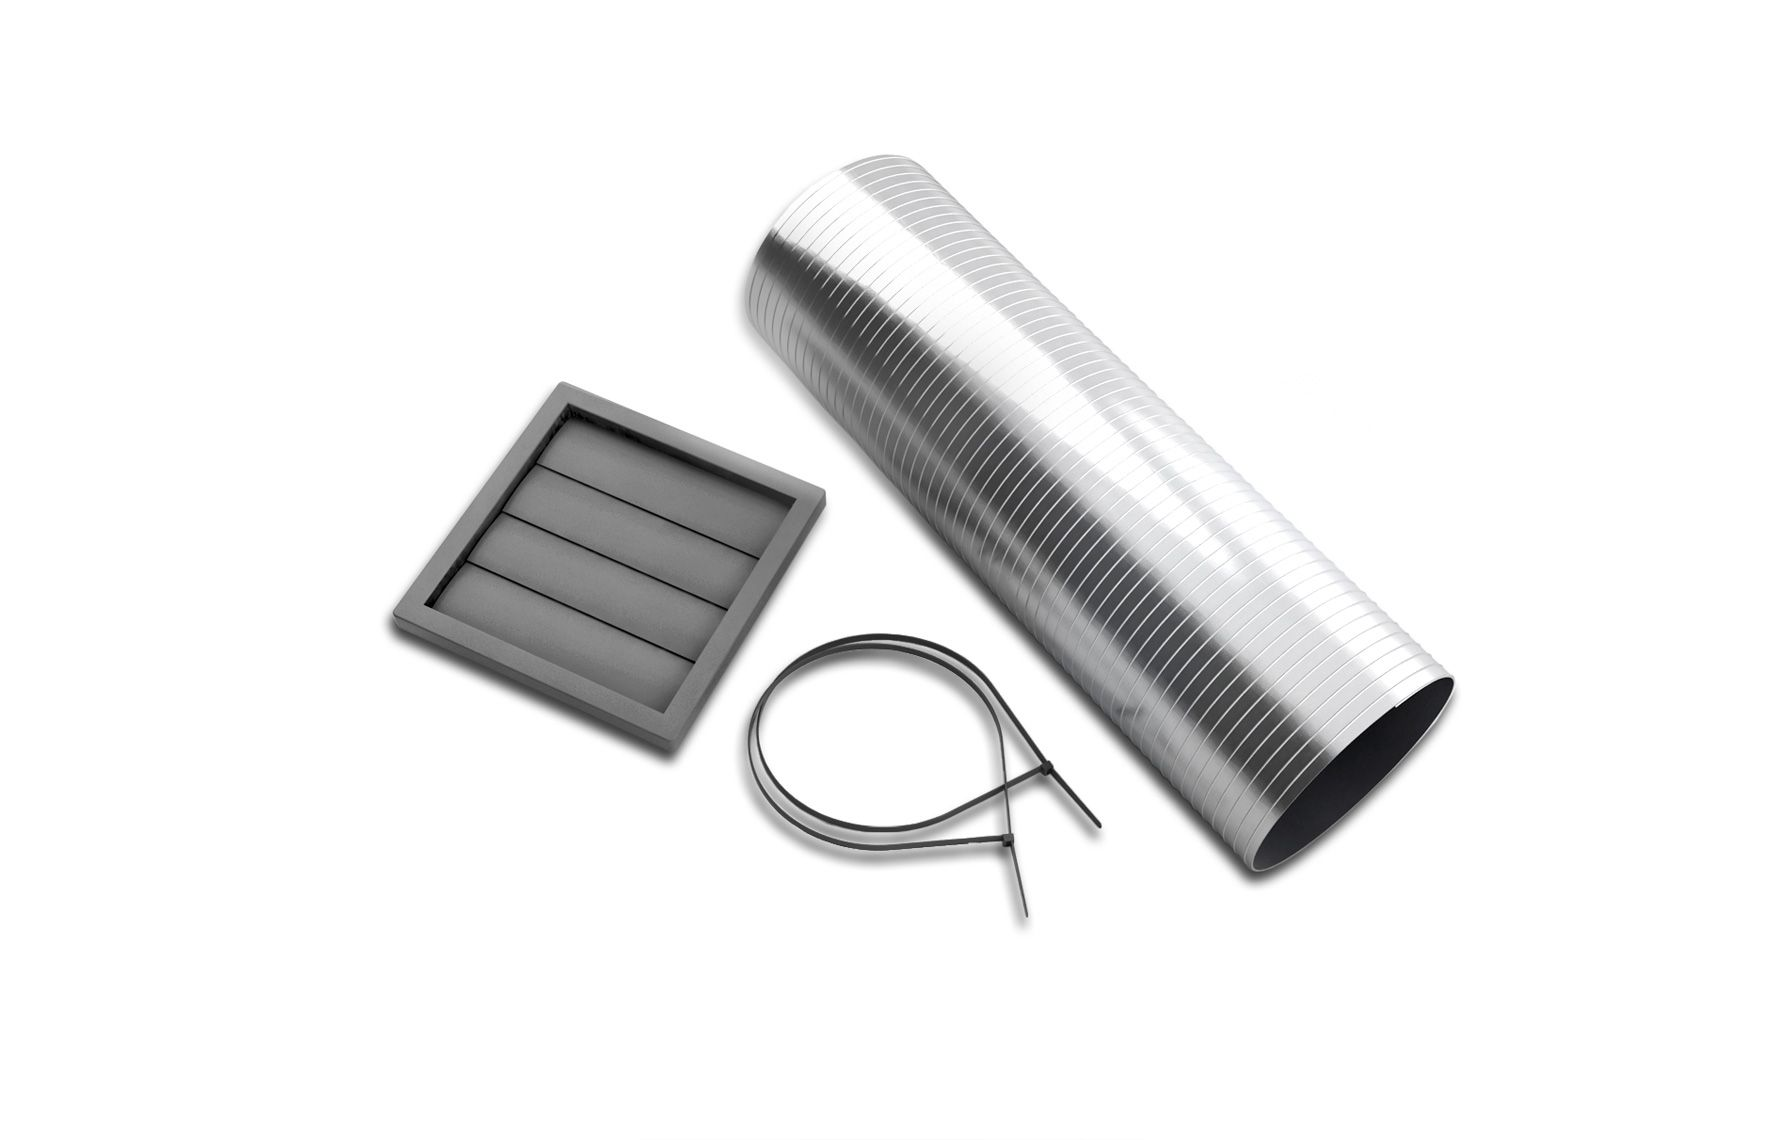 Rangecookers Extraction Ducting Kit 120mm Accessories Rangecookers Co Uk Wall Vents Worm Drive Wall Plug